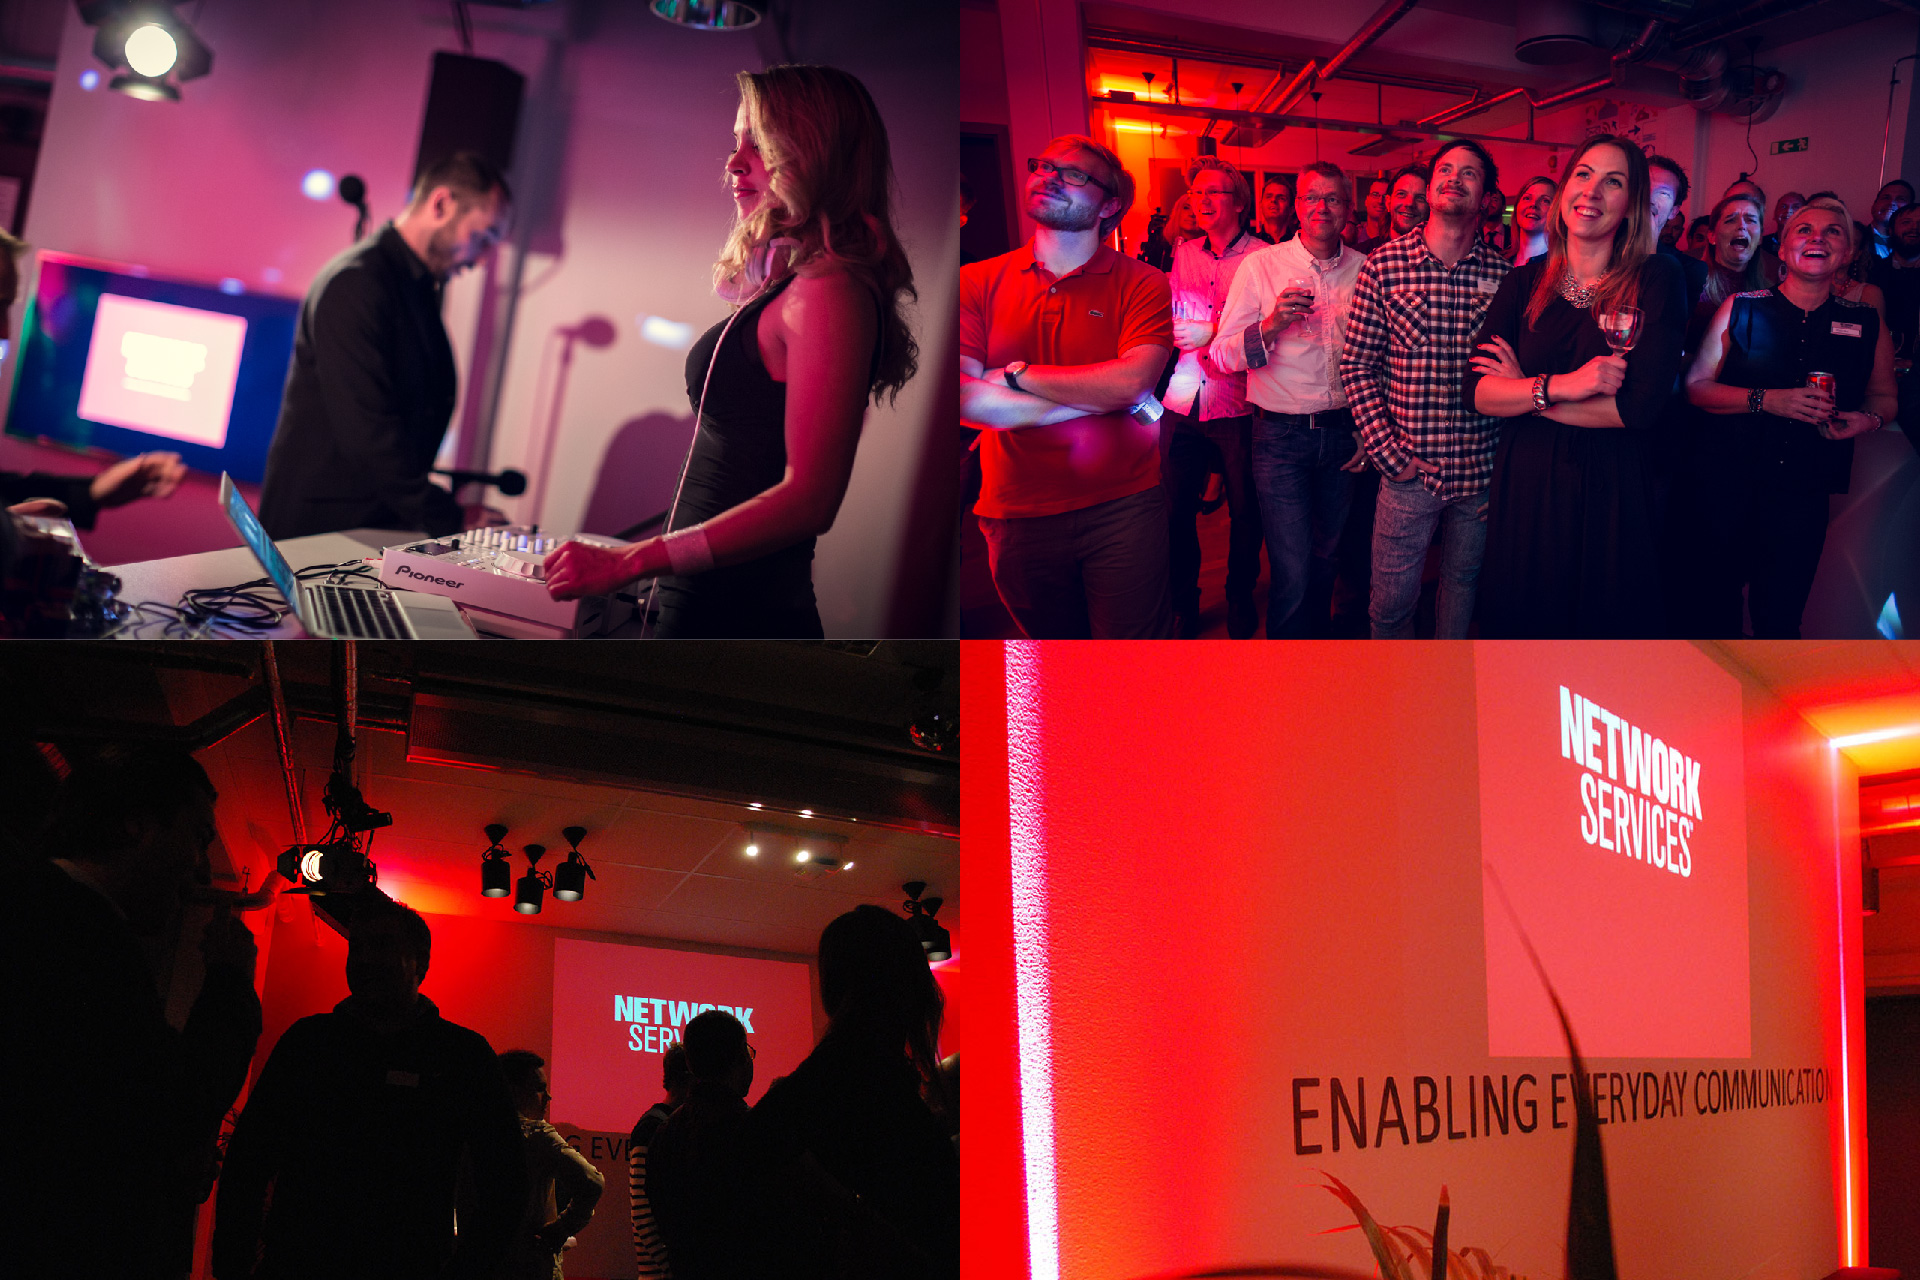 #NETWORKSERVICES, Brand Experience, Entertainment, Activities, Events